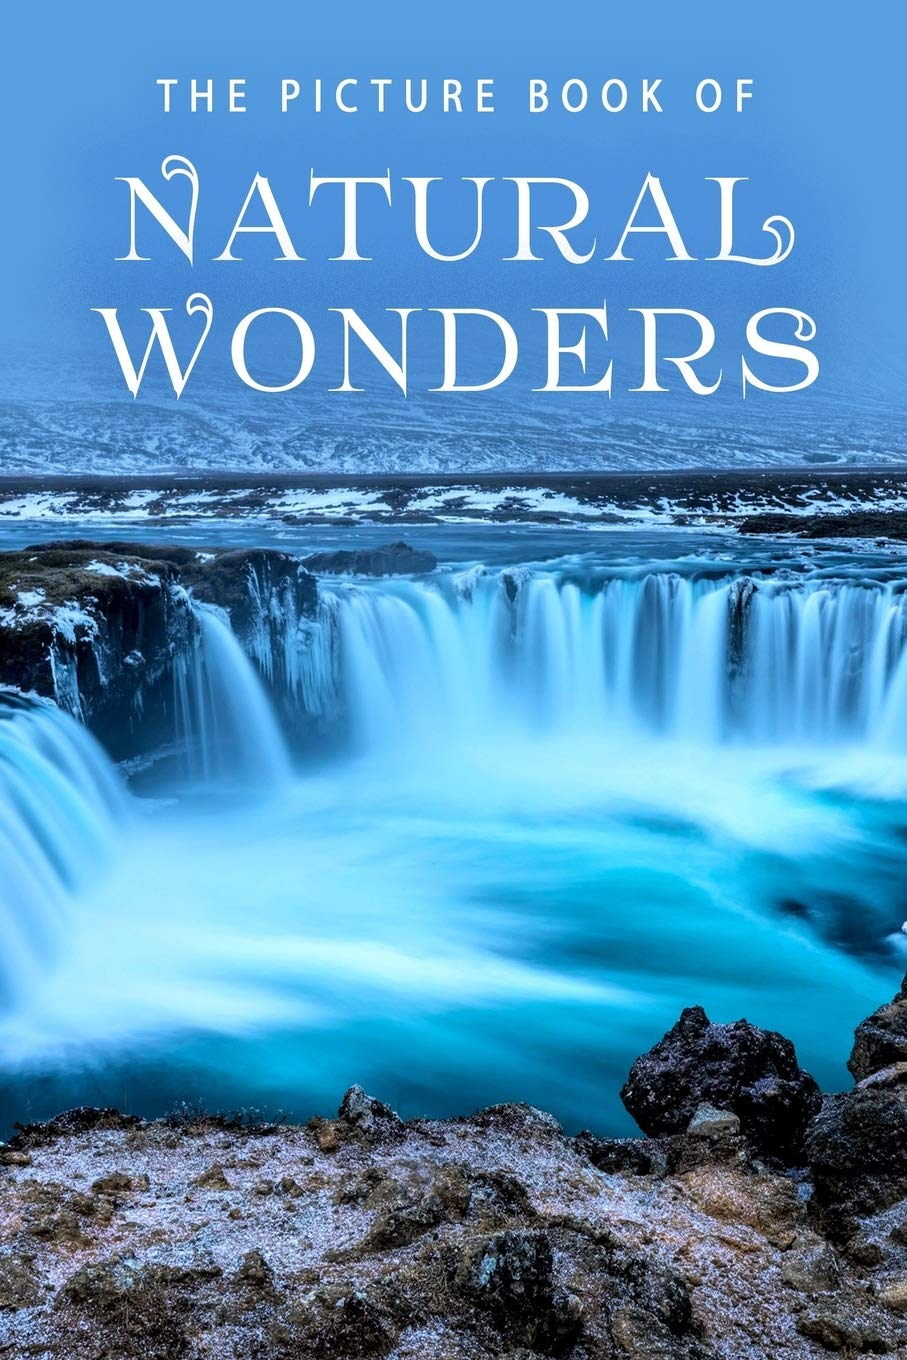 The Picture Book of Natural Wonders: A Gift Book for Alzheimer's Patients and